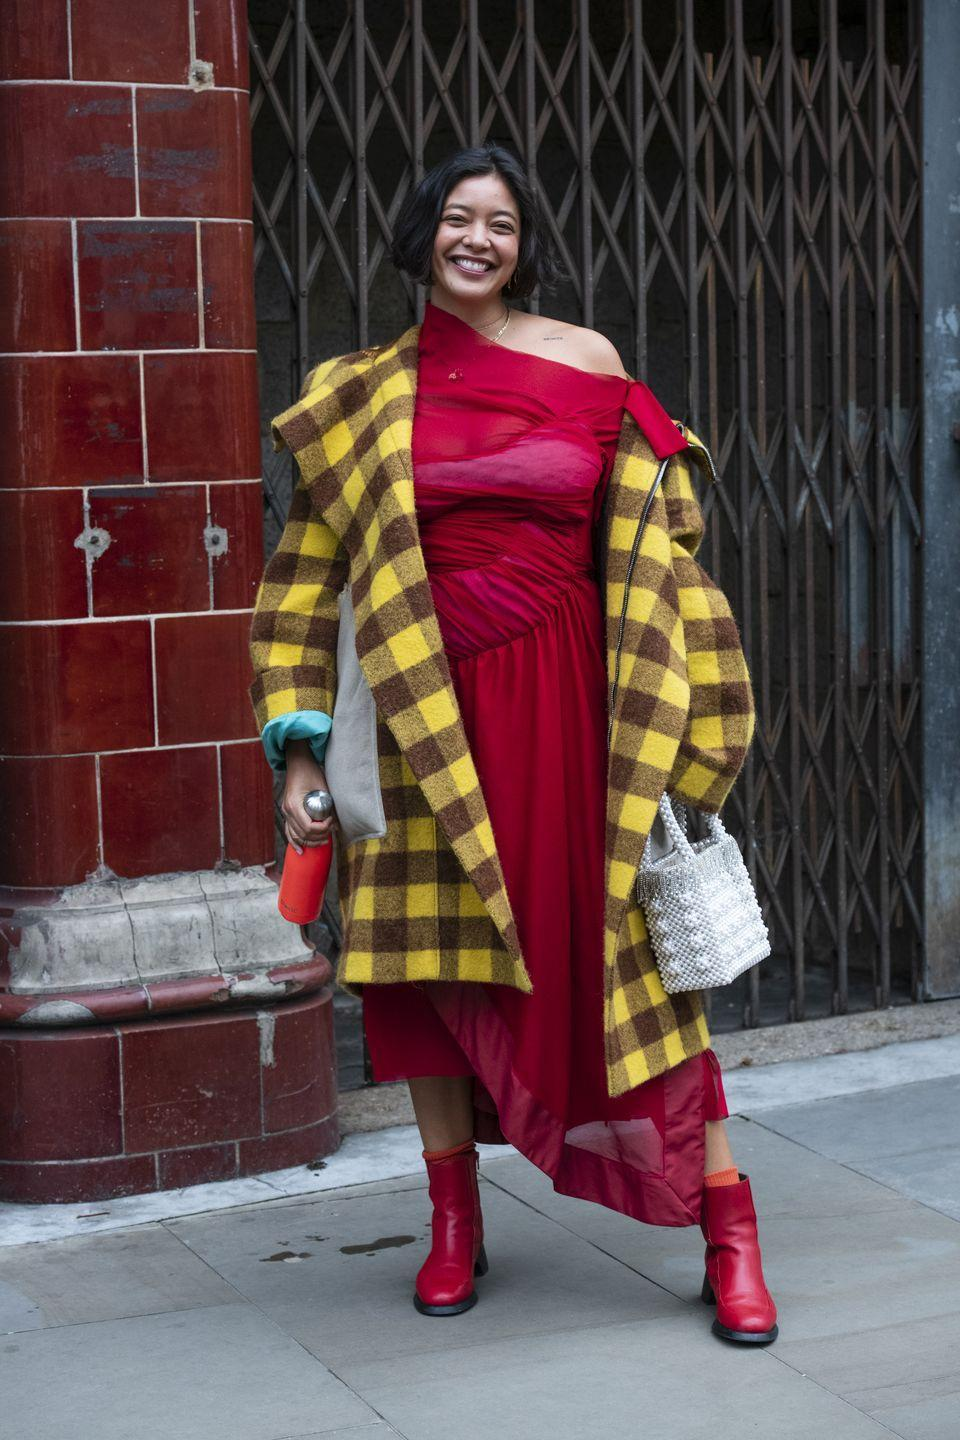 <p>After the dark, dreary months we've just had, it's time to let our skin see some much-needed sunlight in shoulder-baring tops and dresses. Have a jacket at the ready, draped around your arms to conquer those very sunny but equally windy days we've been getting so much of lately.</p>